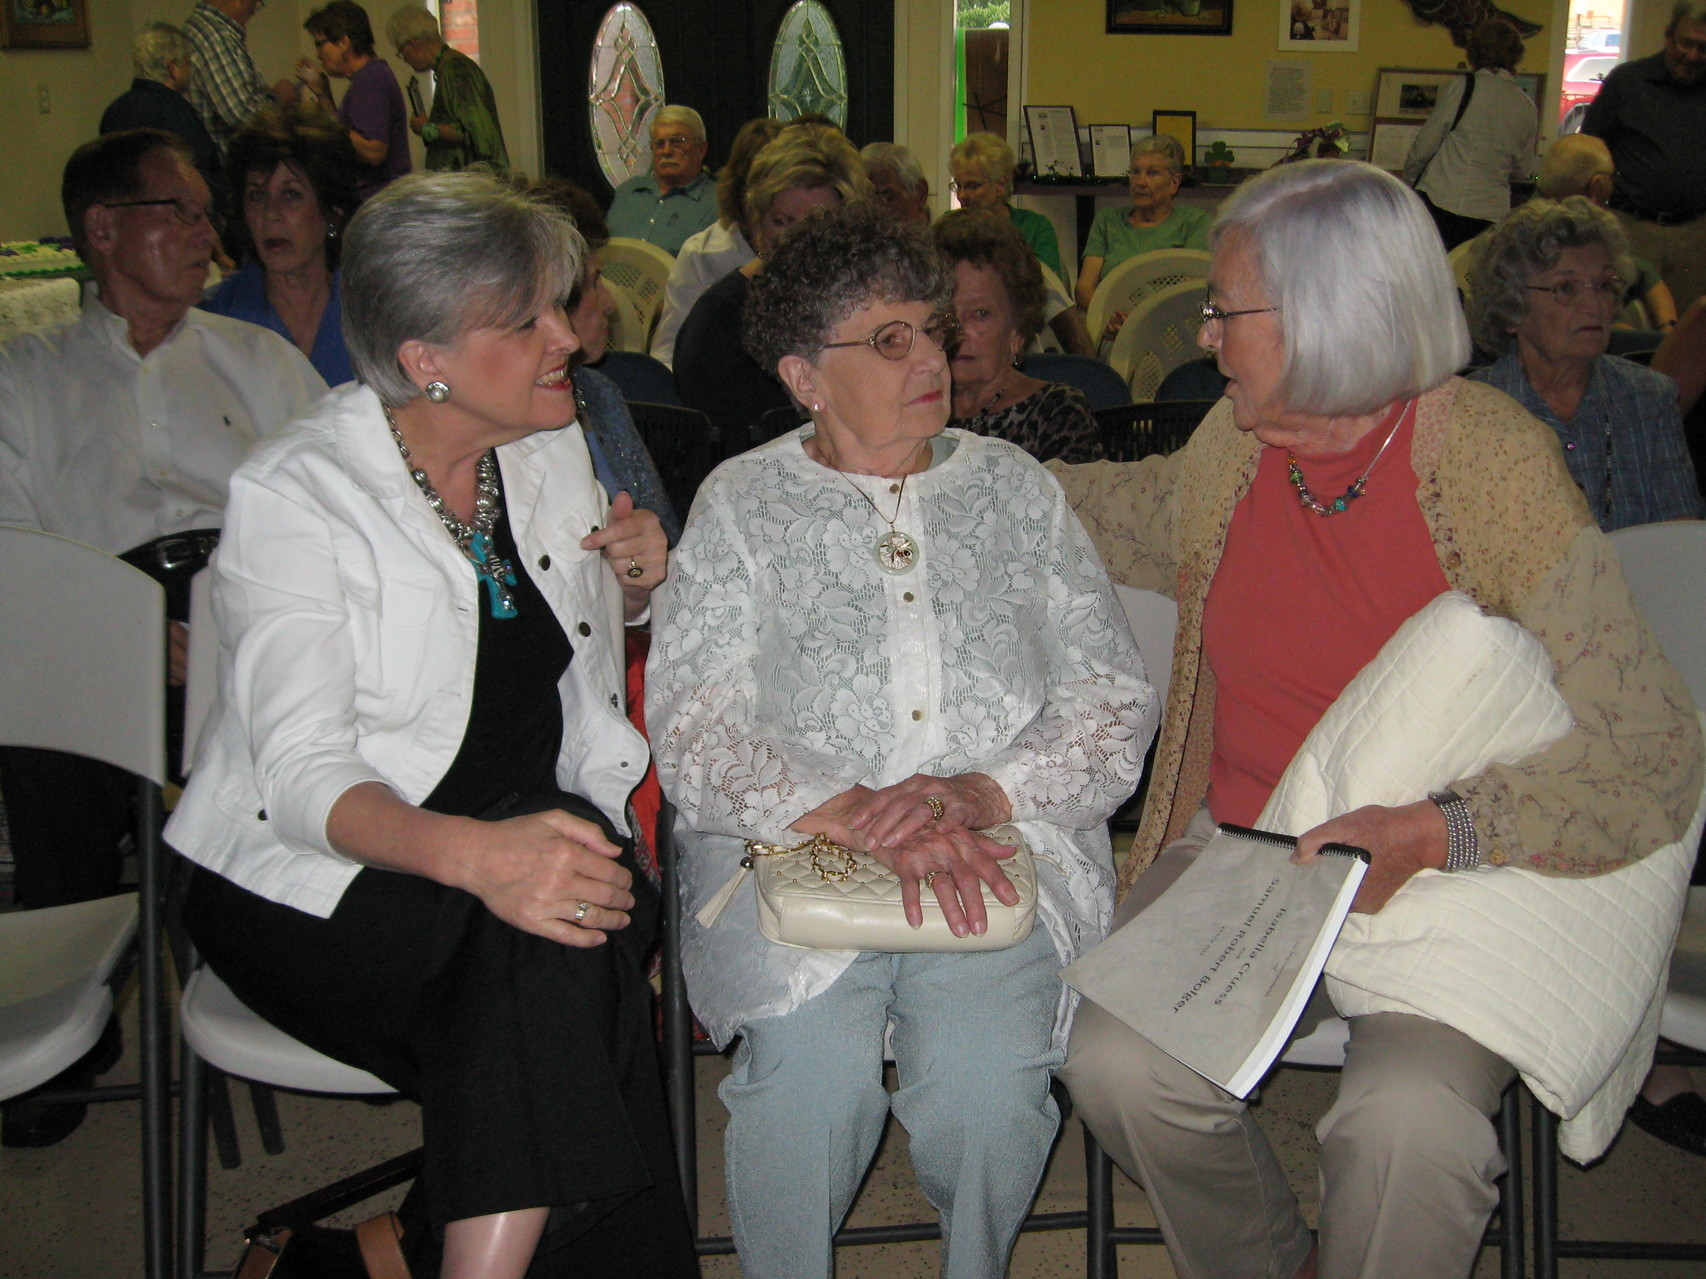 Beth Bolger, center, with Frankie Cooper and Marybelle Bolger, 2013